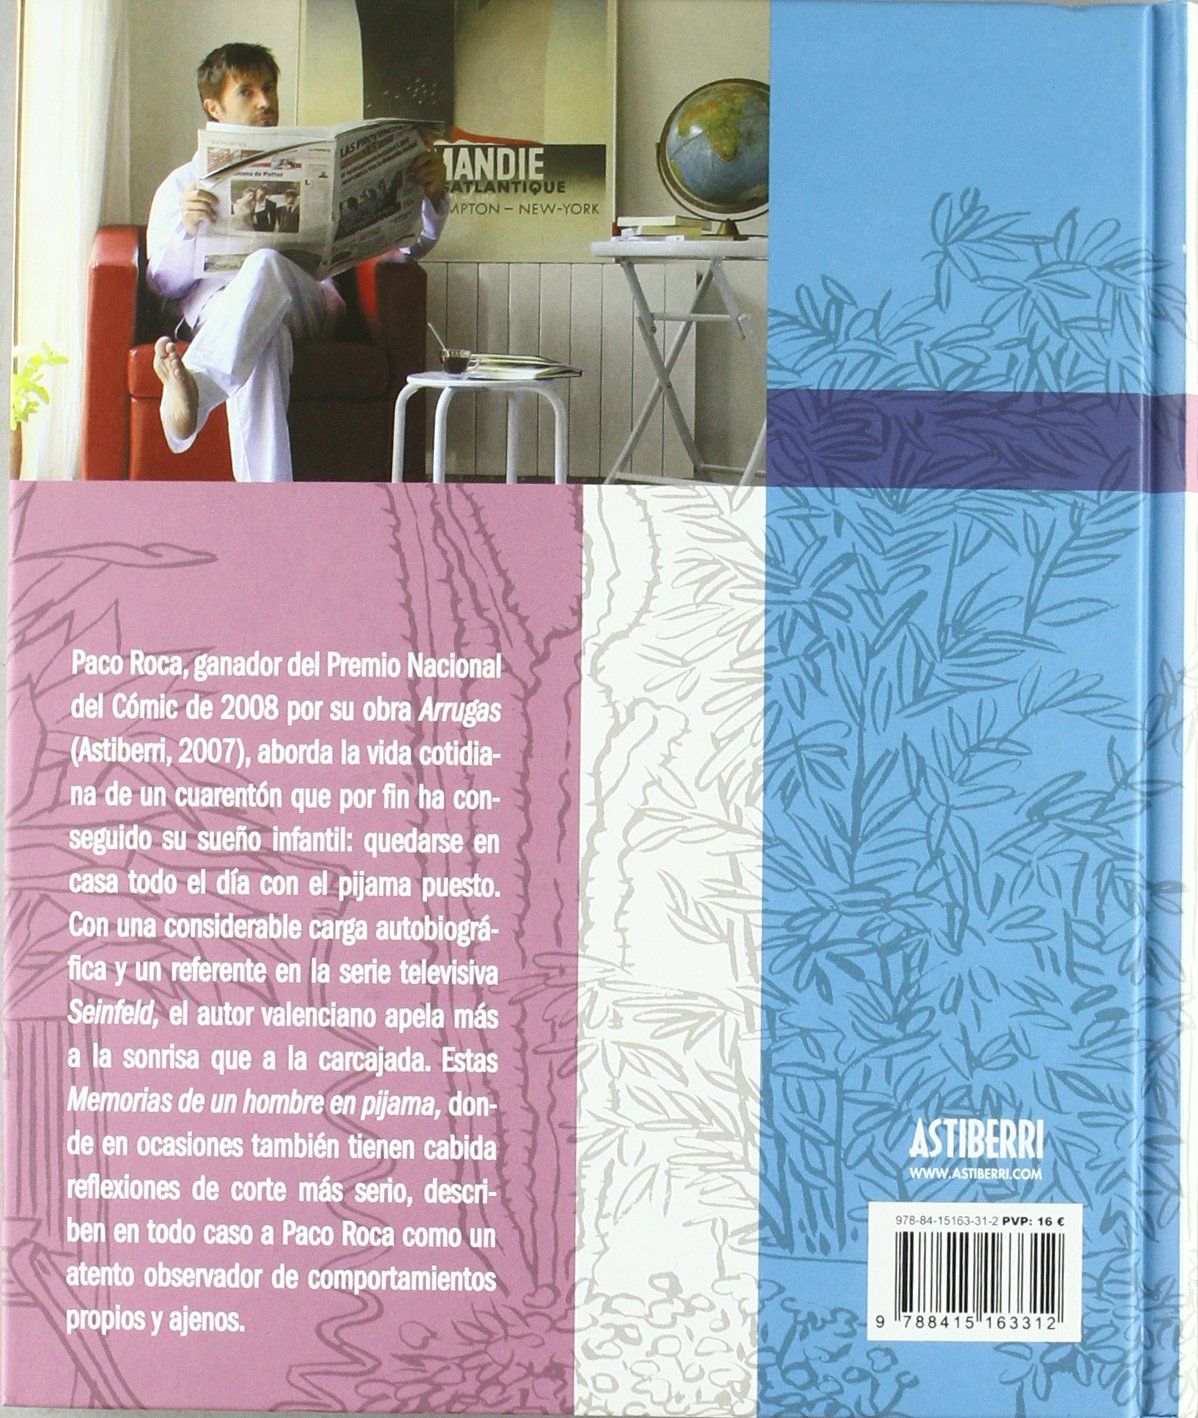 Memorias de un hombre en pijama / Memoirs of a man in pajamas (Spanish Edition): Paco Roca: 9788415163312: Amazon.com: Books